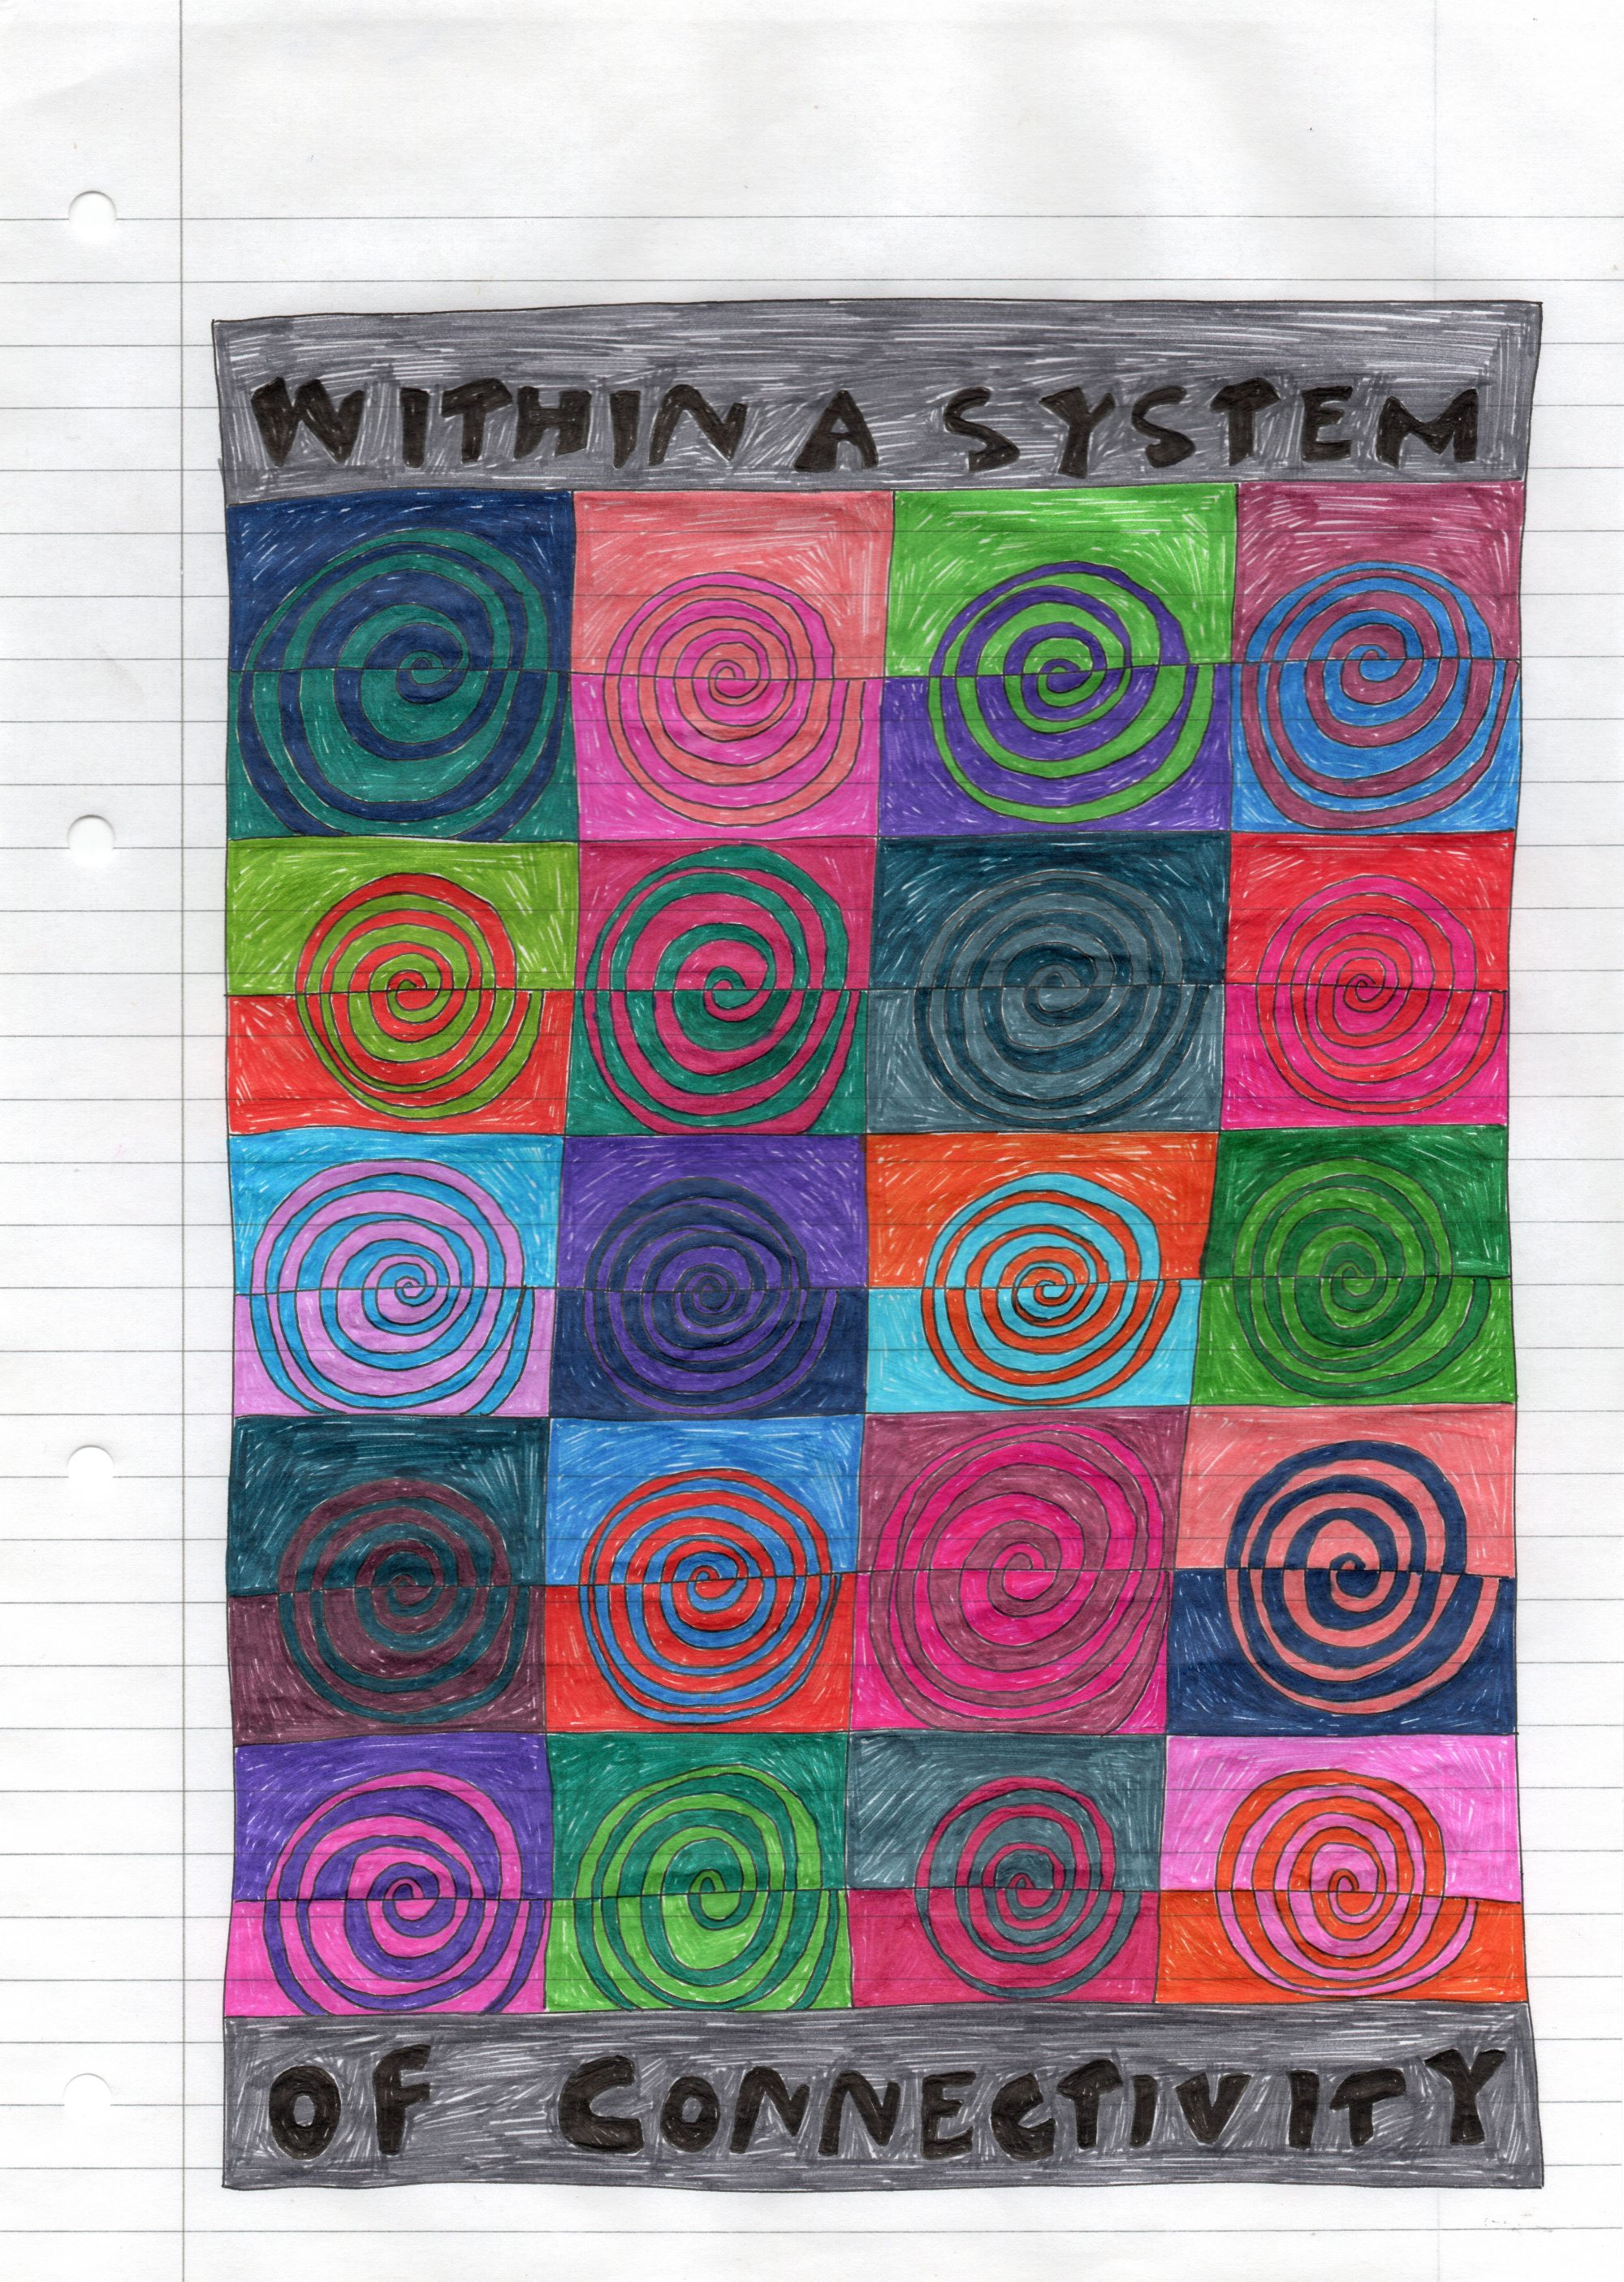 """A sheet of white lined office paper, leaving the margin clear, is filled with a multicoloured pen drawing. In the middle contains a grid of twenty spirals each made up of two contrasting colours and divided horizontally in the middle. Surrounding this reads: """"WITHIN A SYSTEM OF CONNECTIVITY"""" in black ink on a grey background."""